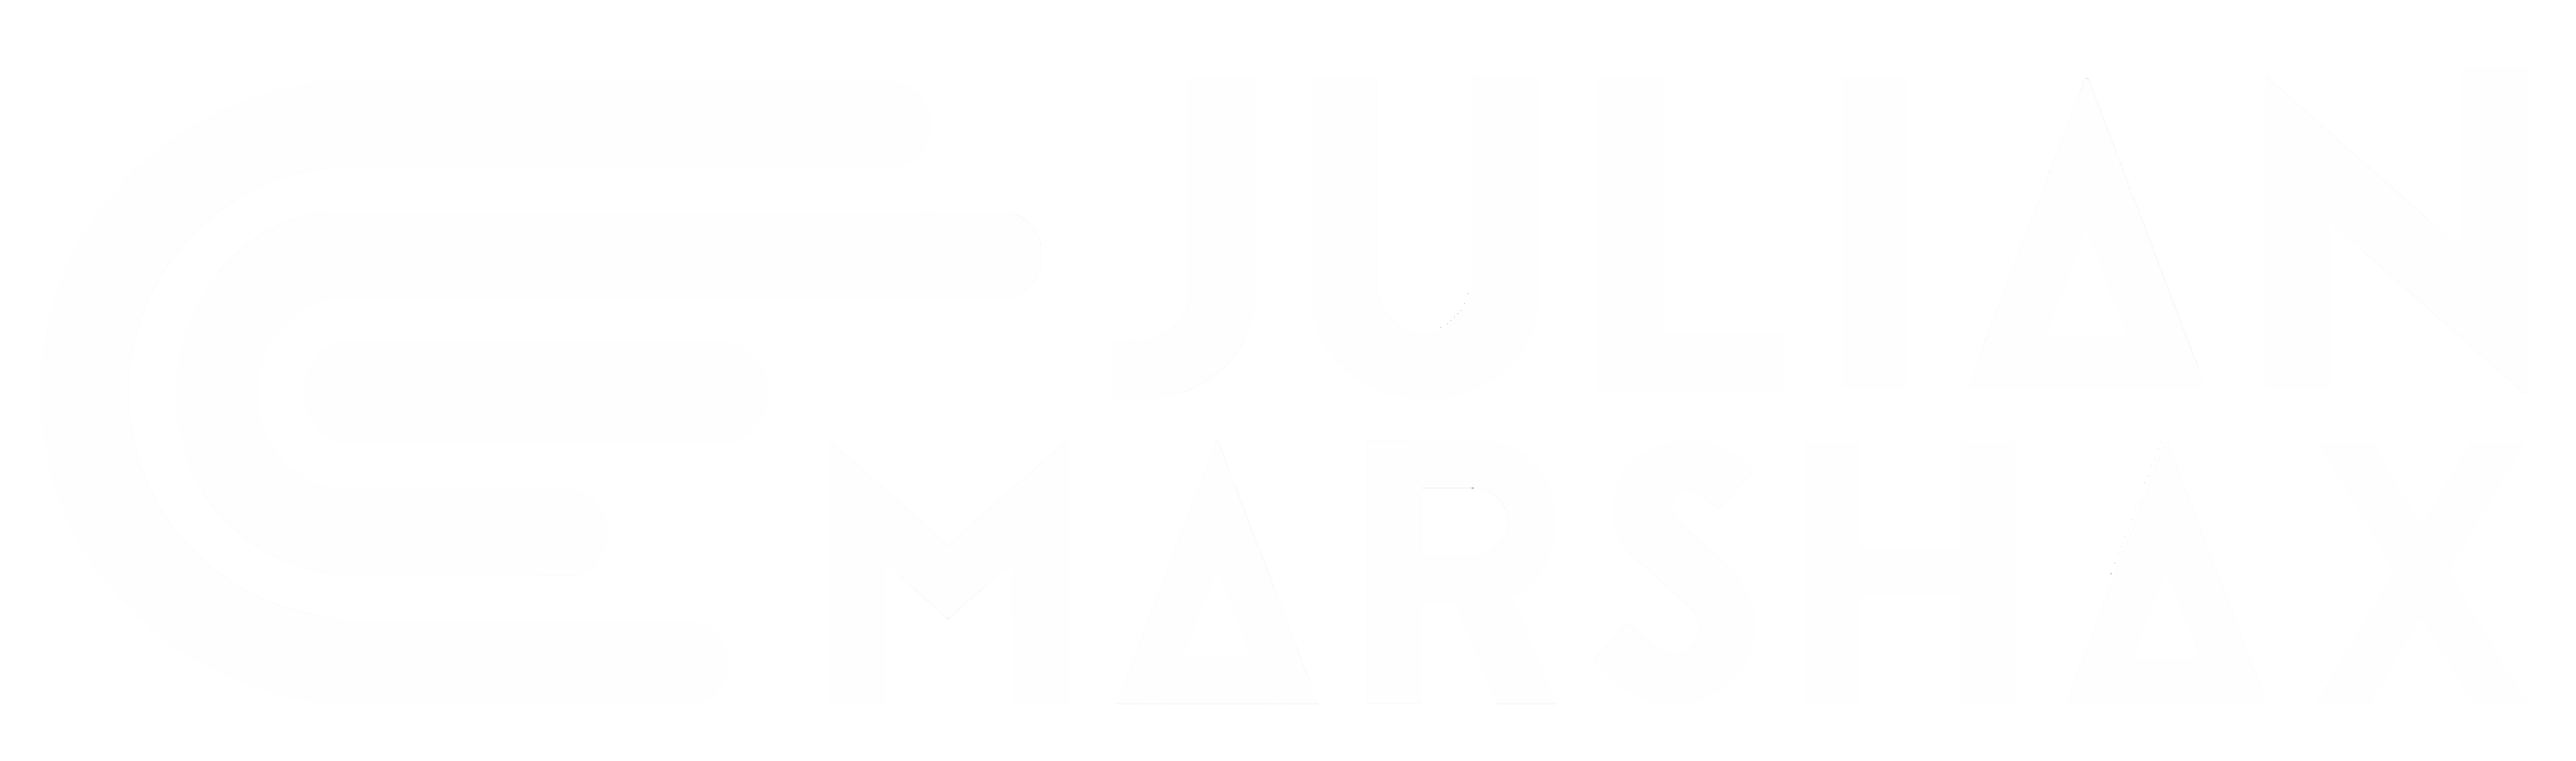 Julianmarshax